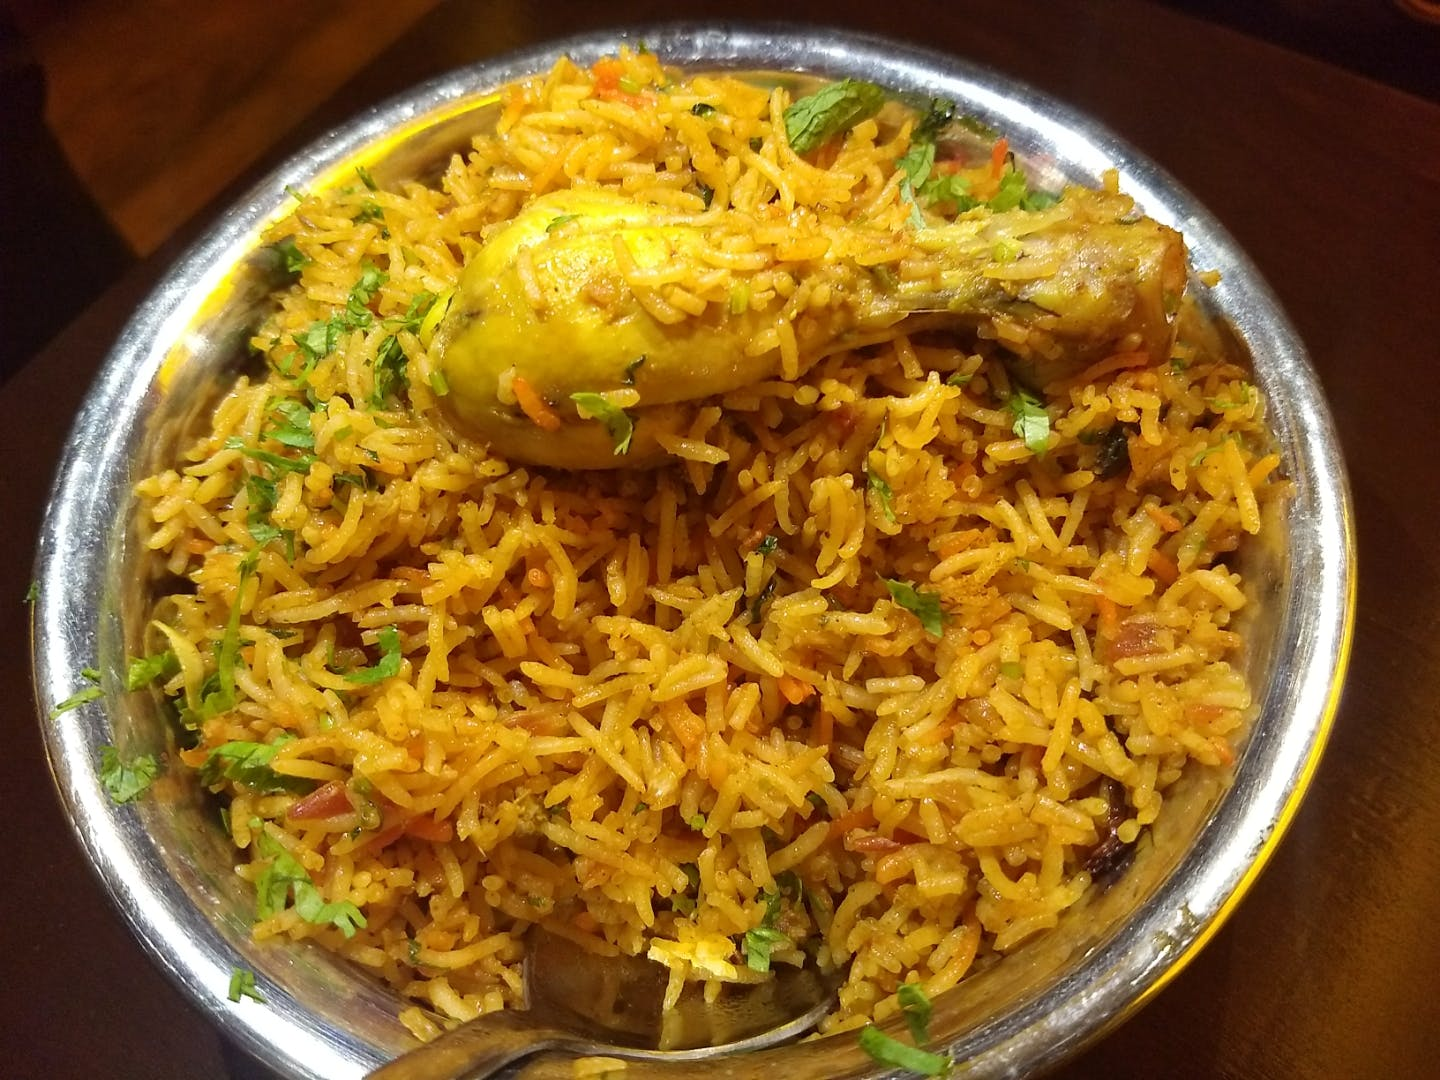 Dish,Cuisine,Spiced rice,Food,Puliyogare,Biryani,Hyderabadi biriyani,Ingredient,Rice,Kabsa